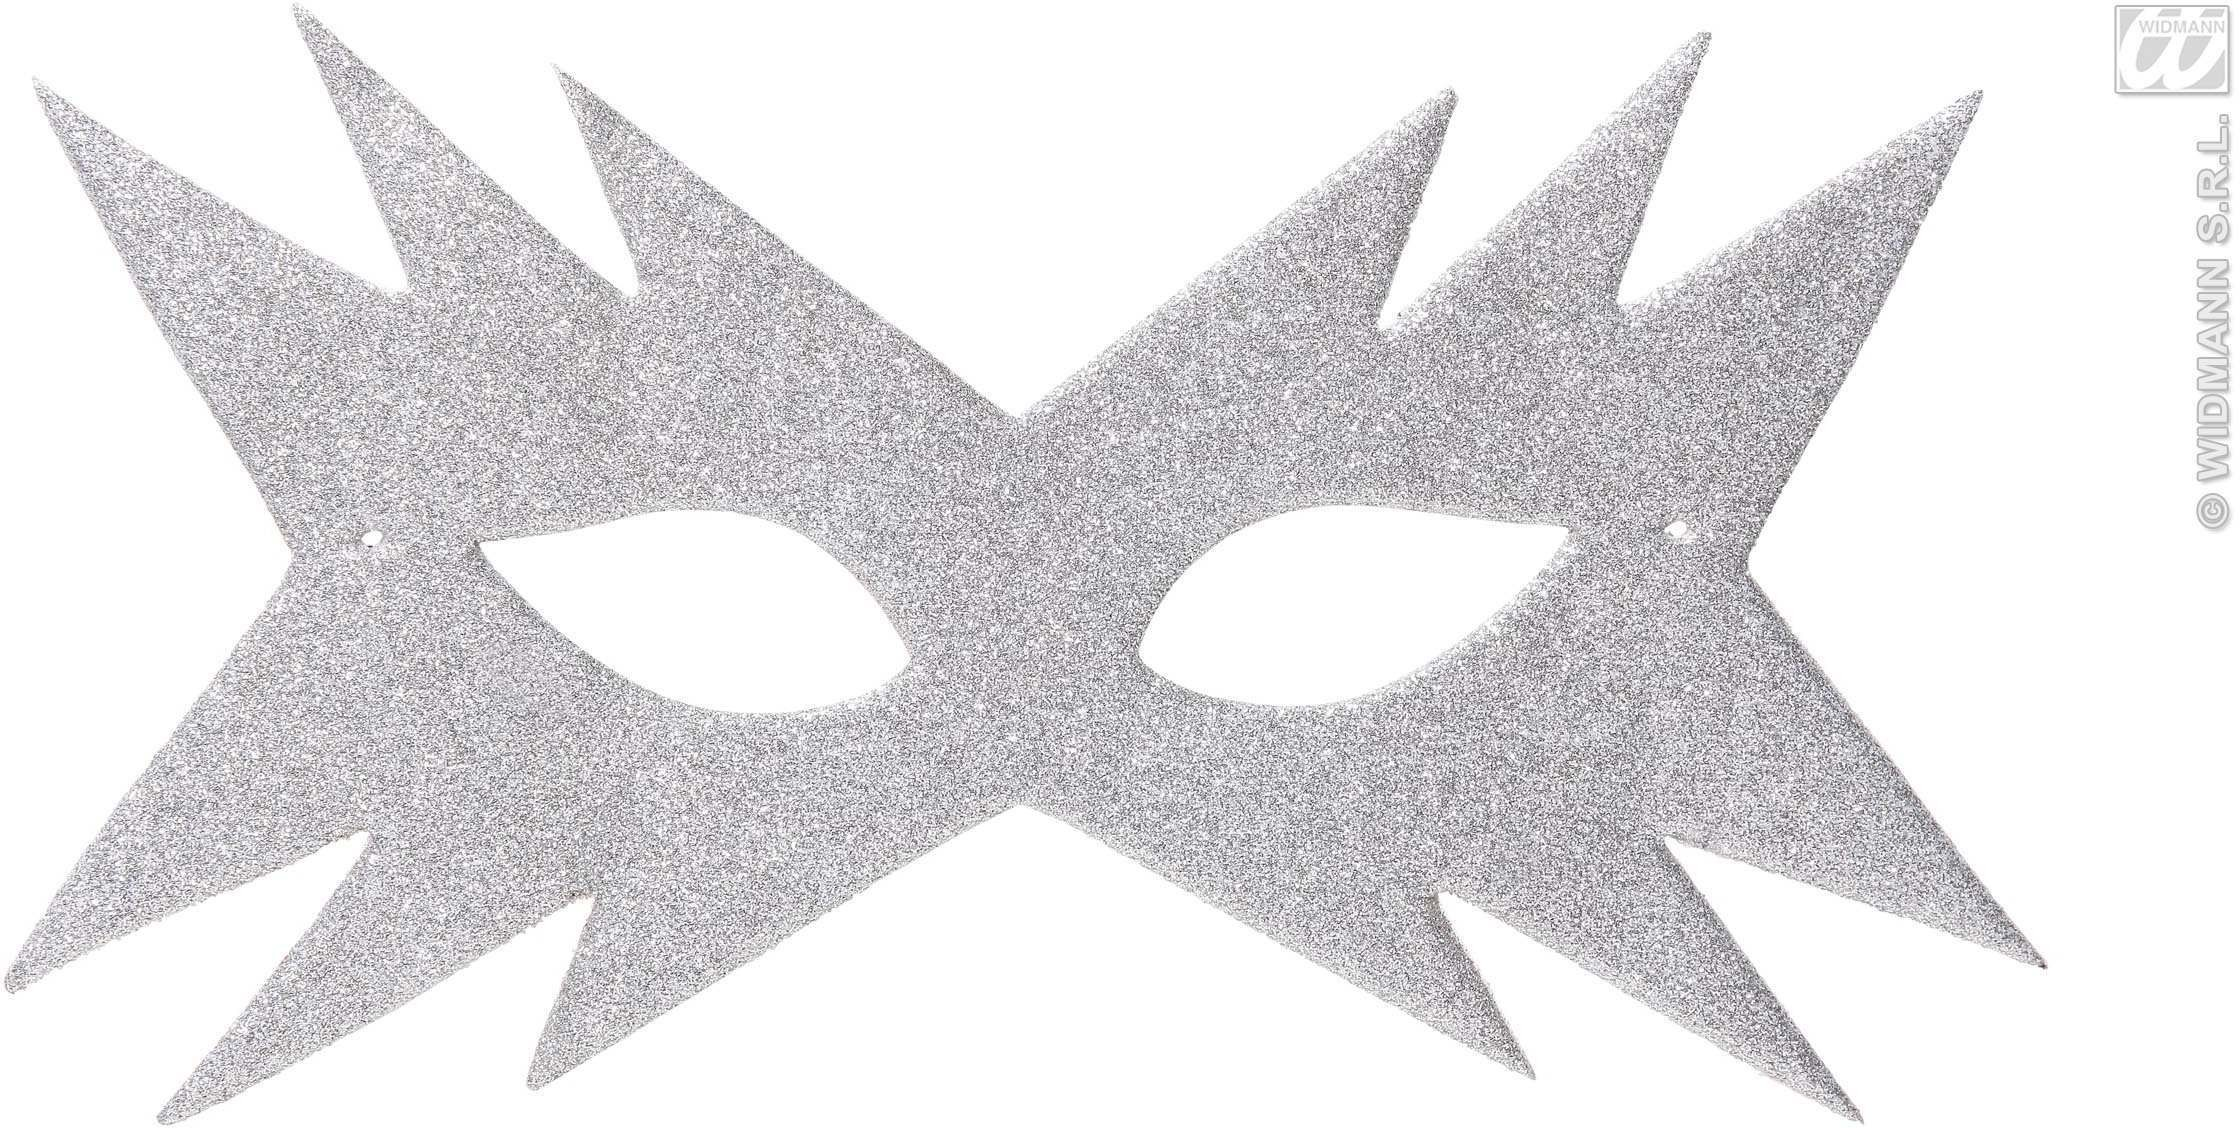 Star Eyemask - Silver - Fancy Dress